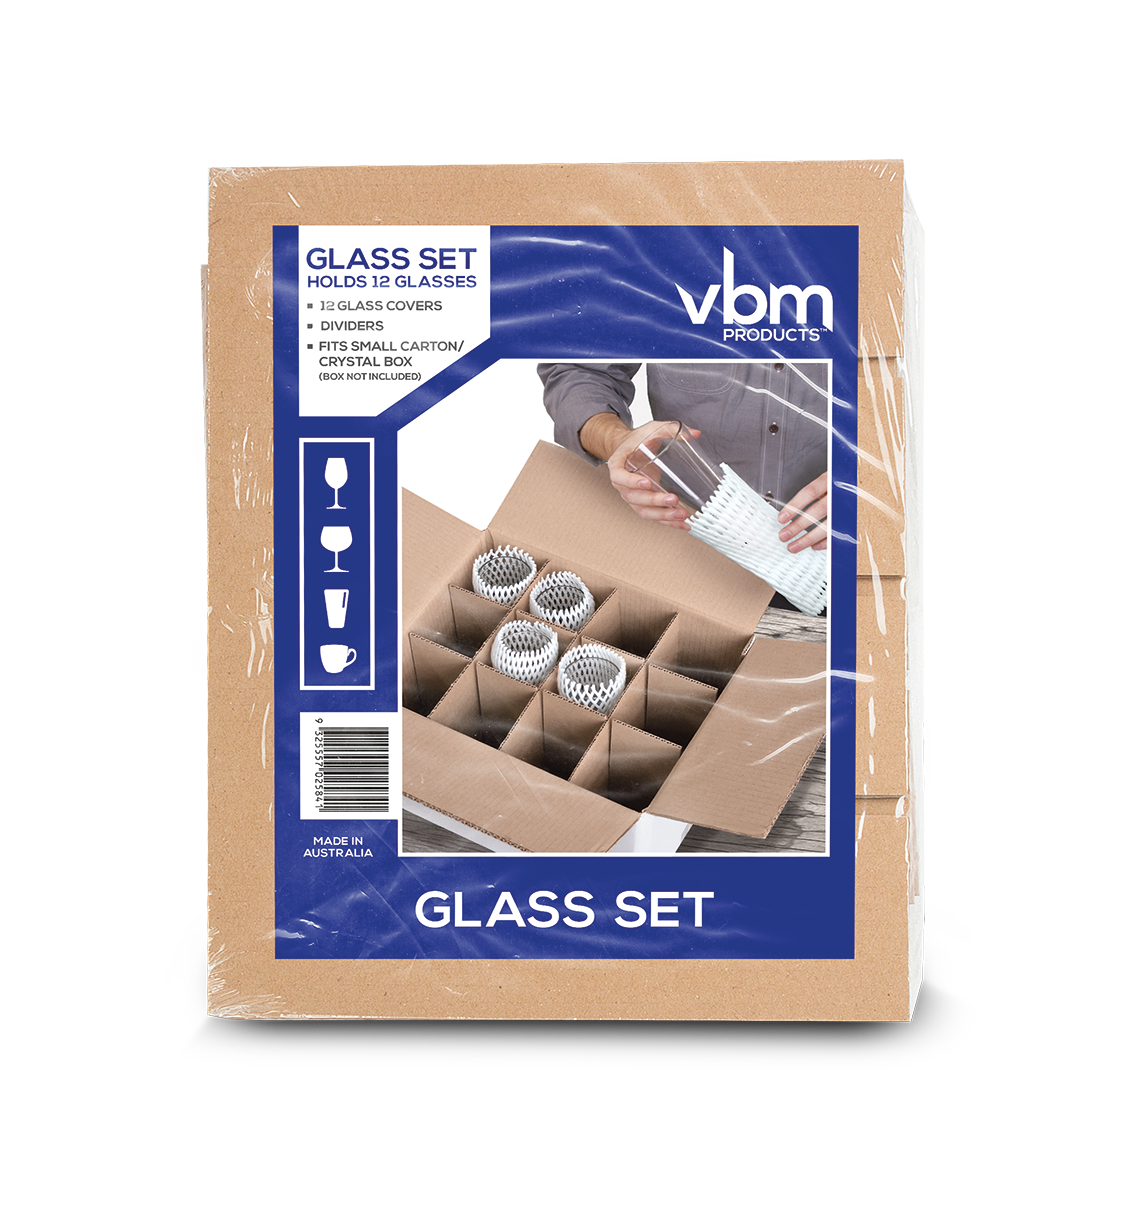 VBM_Glass-Kit_Retail.png